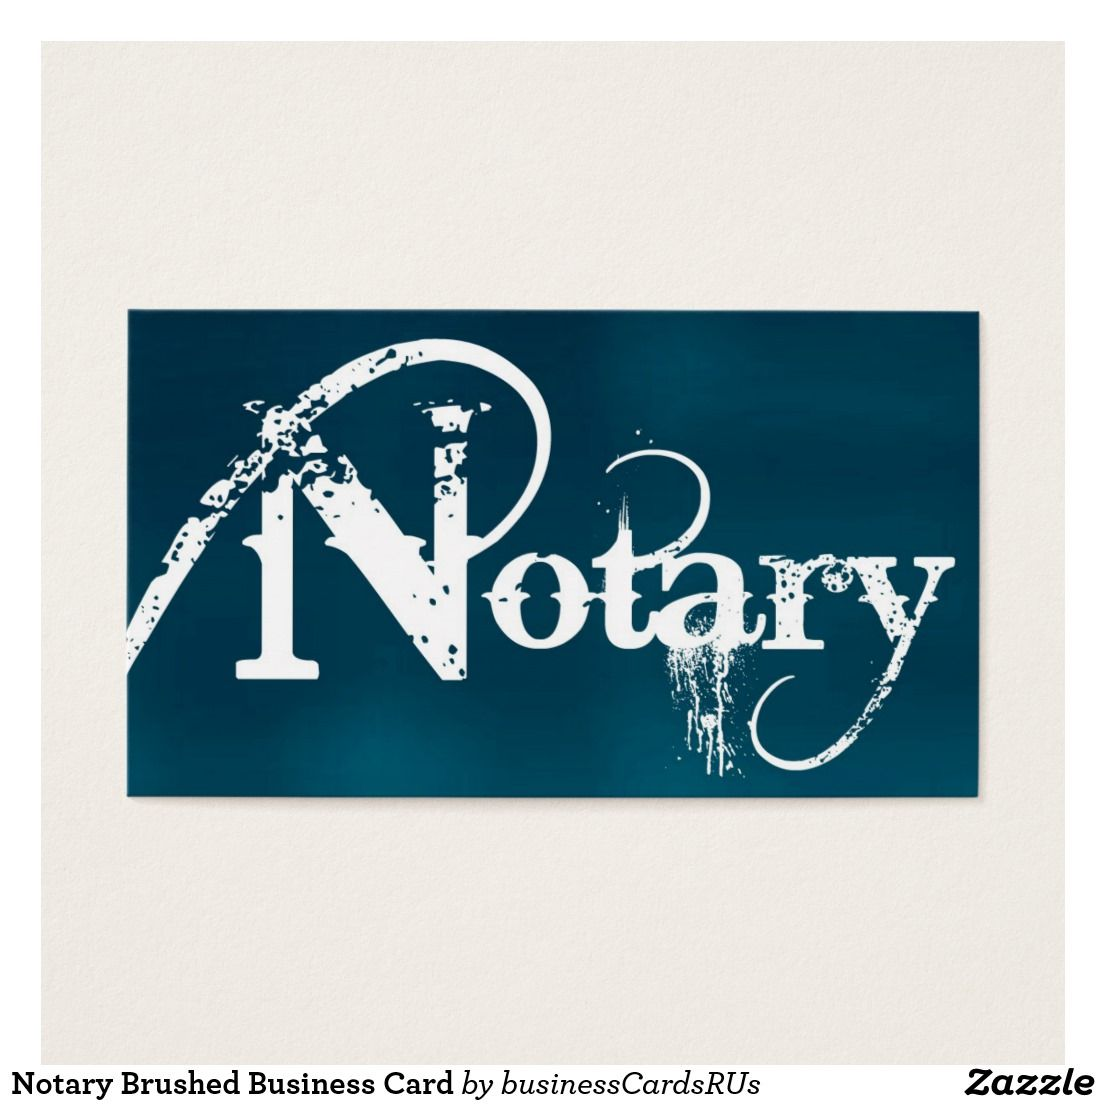 Notary brushed business card business cards and business notary brushed business card custom check out more business card designs at httpzazzlebusinesscreations or at httpzazzle reheart Choice Image